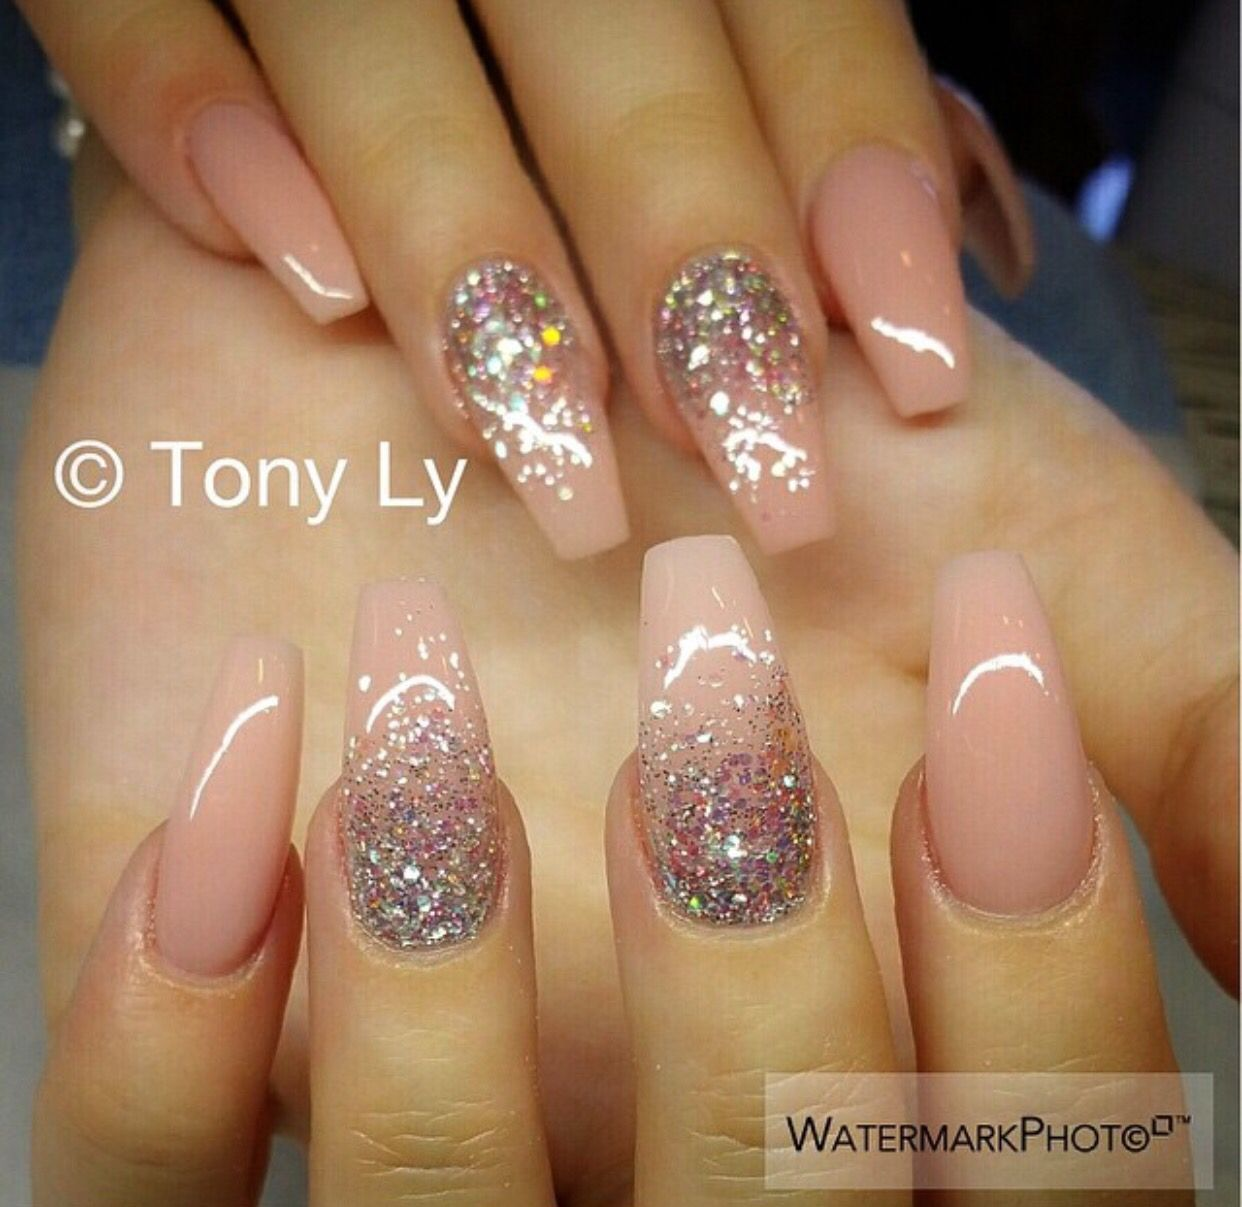 Nude & Sparkle Nails - #nails #nail art #nail #nail polish #nail ...